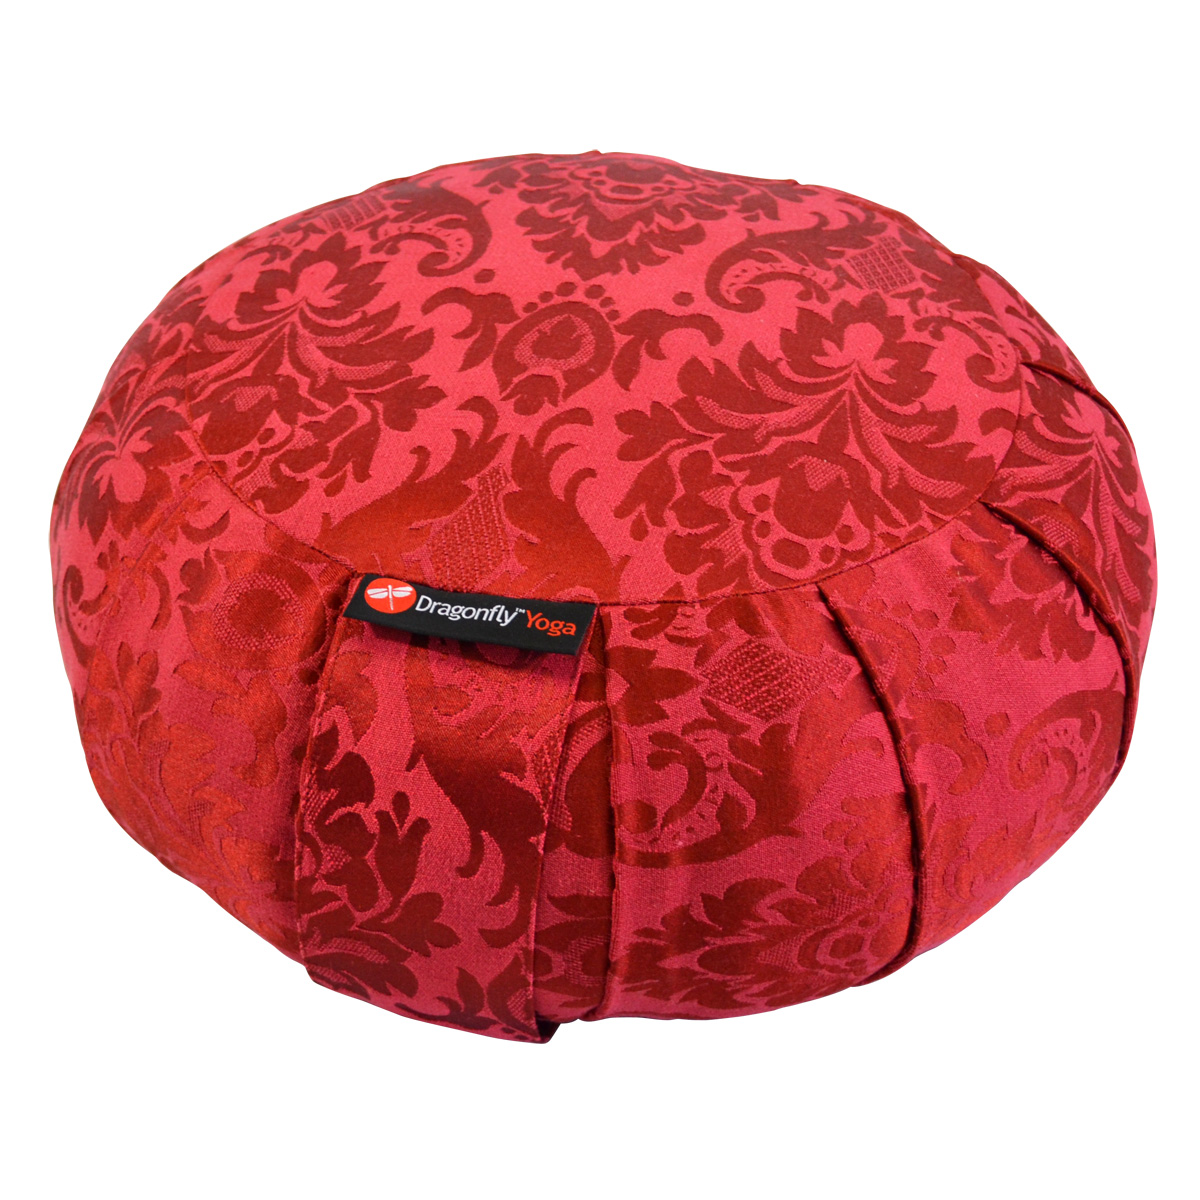 Dragonfly Round Silk Zafu by Dragonfly